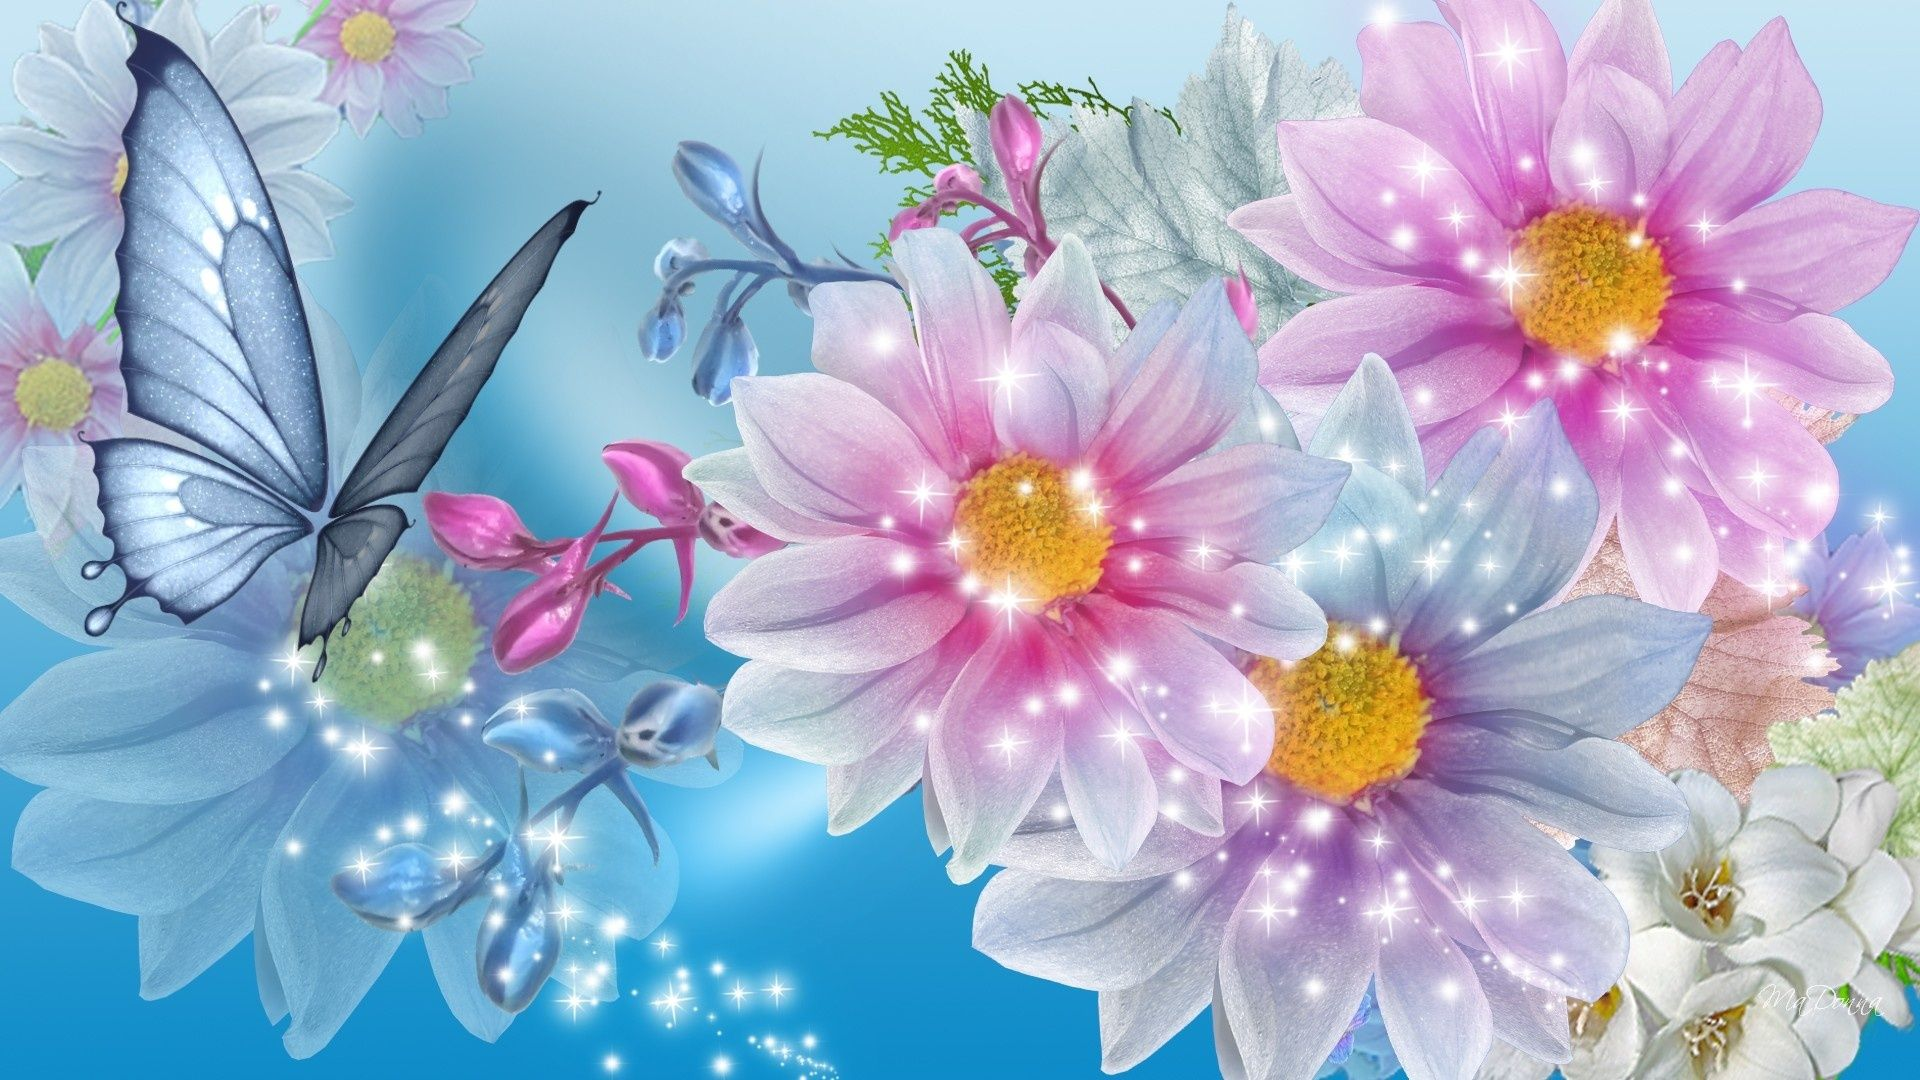 Beautiful Flower Wallpaper For Girls Desktop Wallpaper Rose Flower Wallpaper Flower Wallpaper Blue Flower Wallpaper